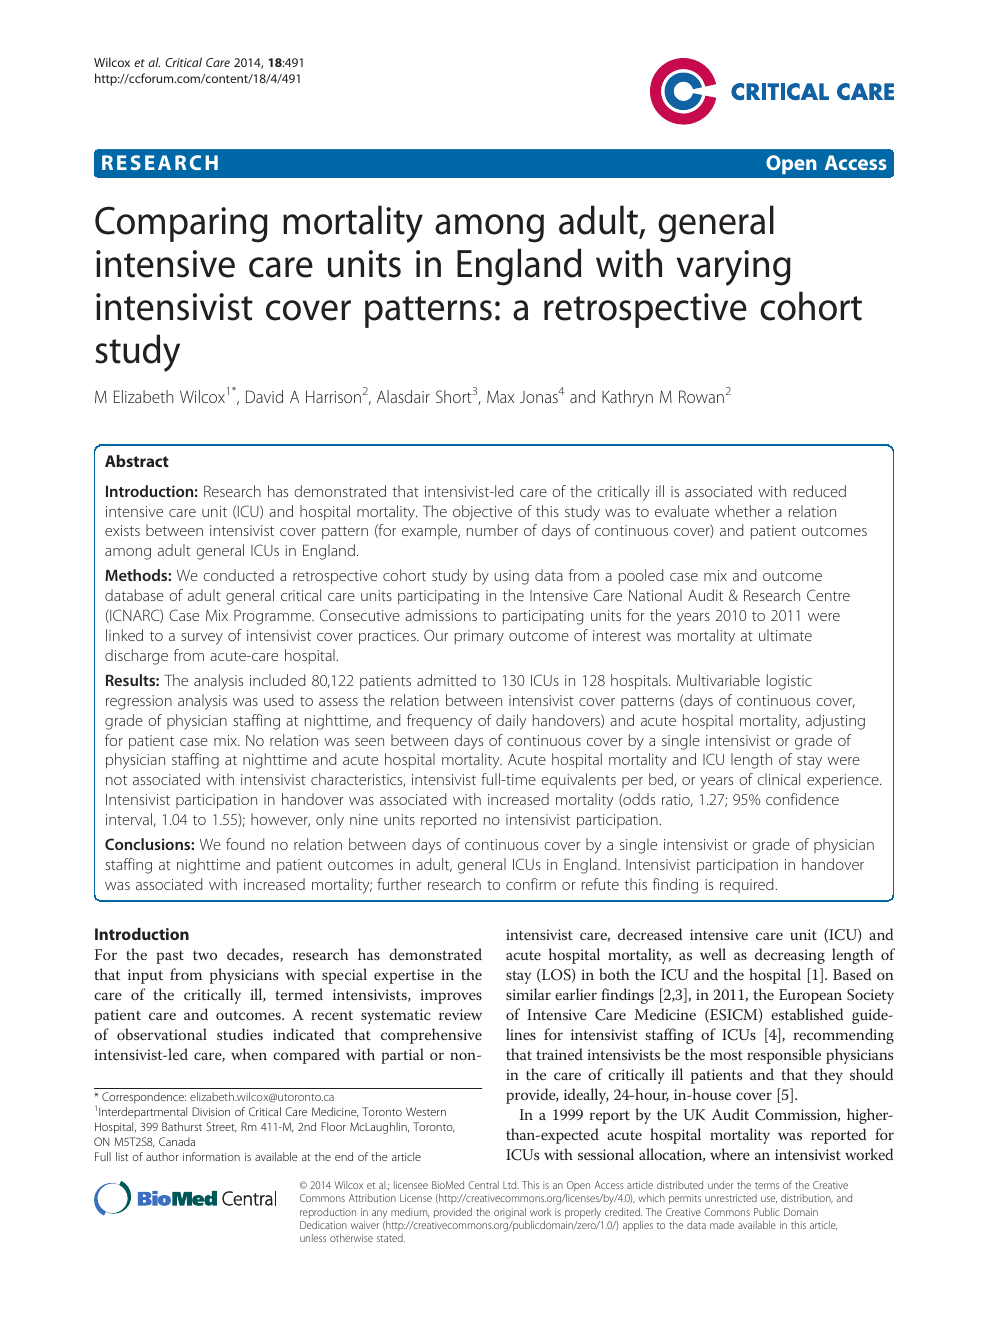 Comparing mortality among adult, general intensive care